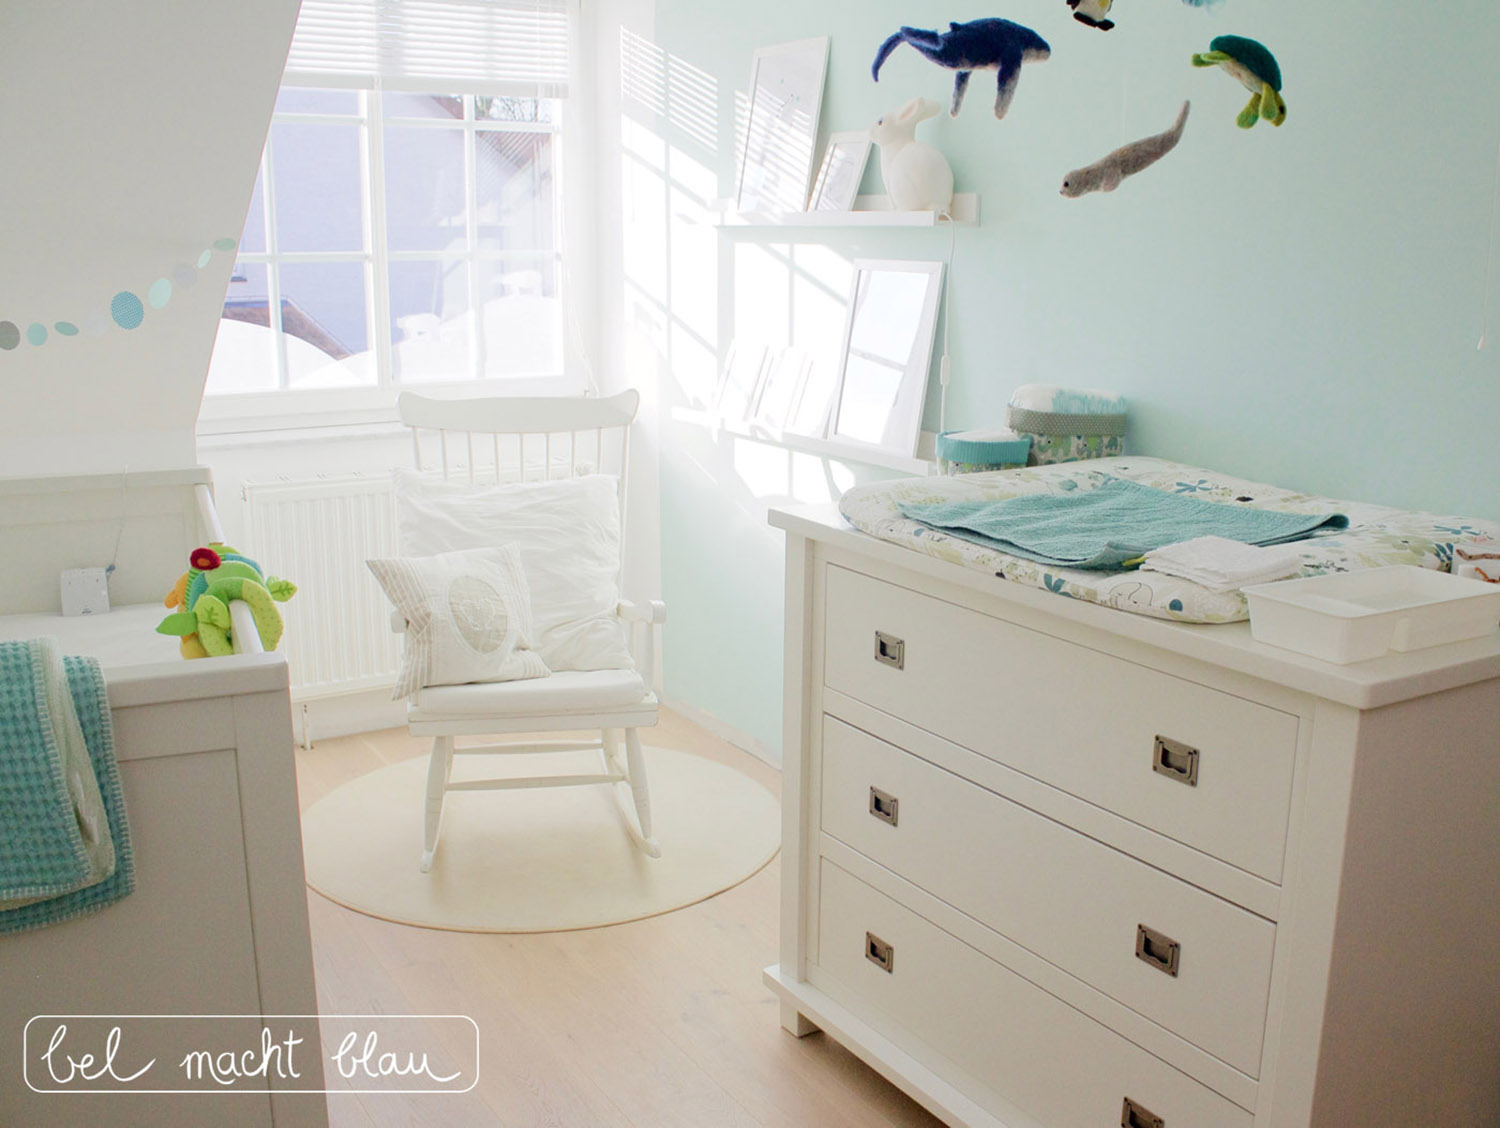 babyzimmer mint 1 logo bel macht blau. Black Bedroom Furniture Sets. Home Design Ideas